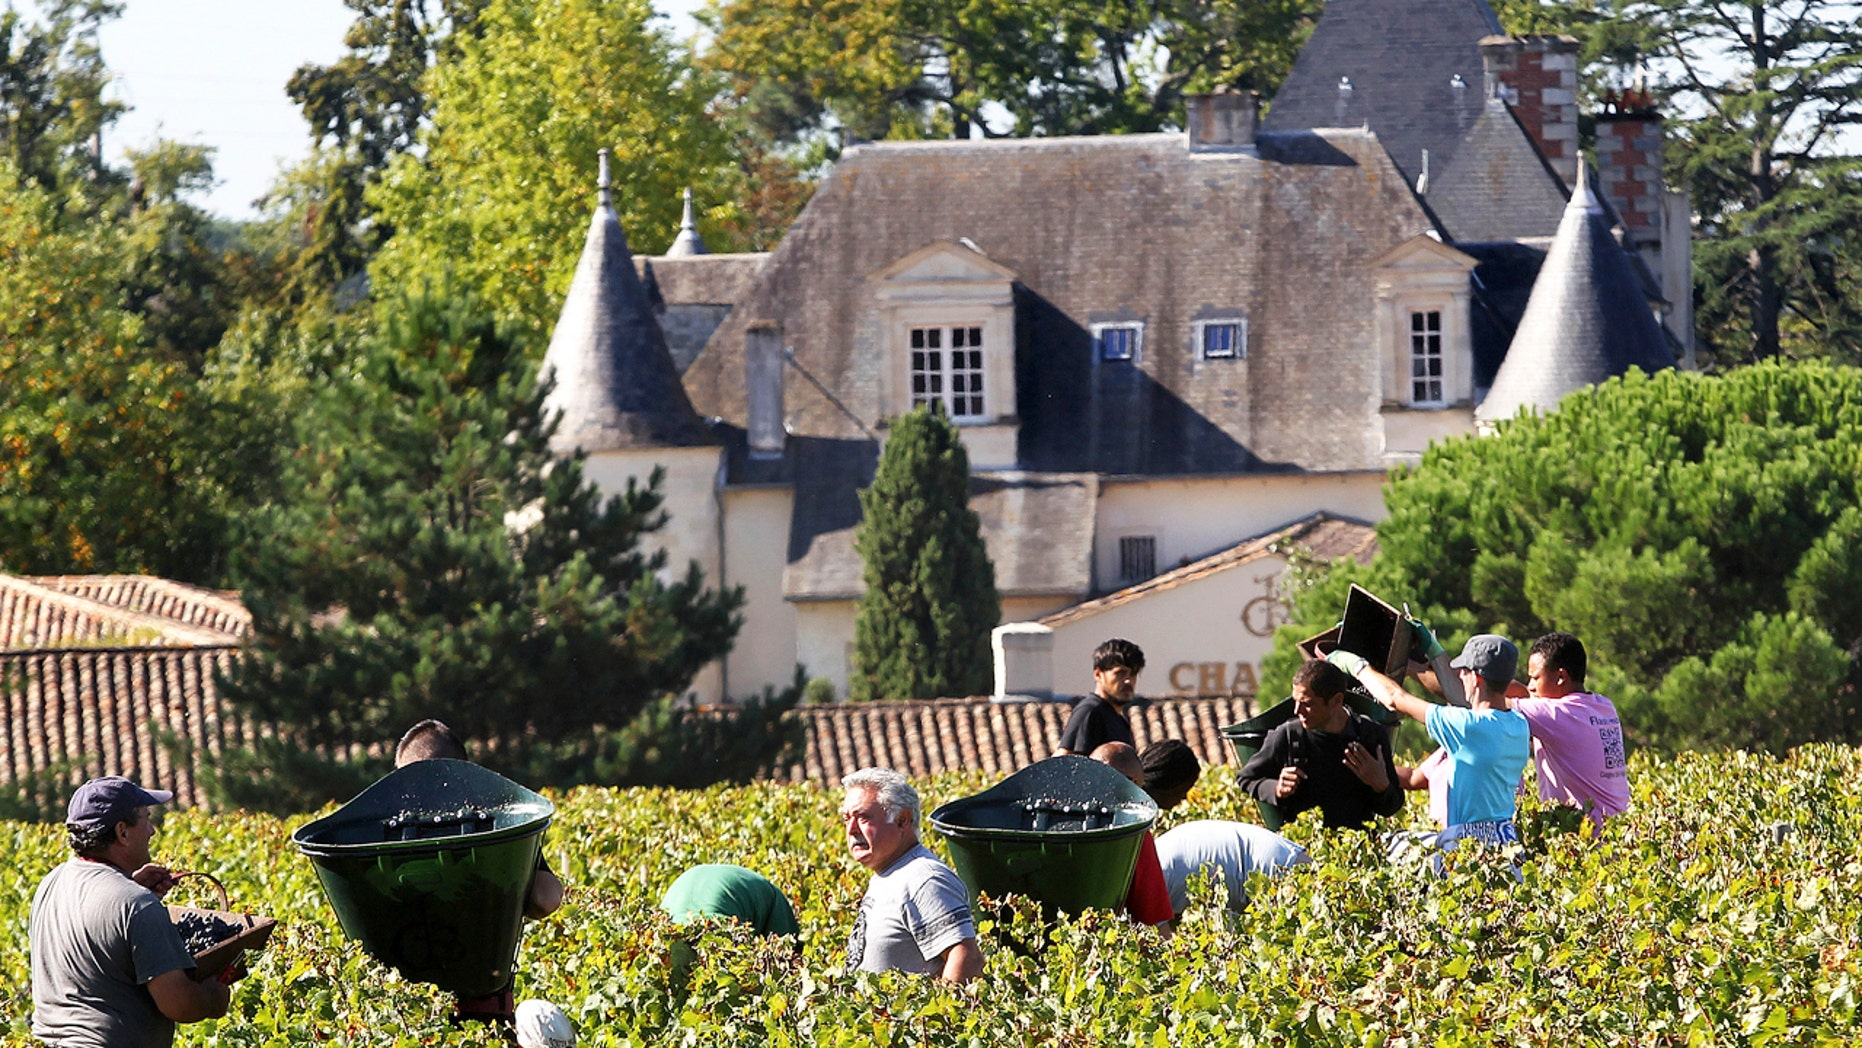 Workers collecting red grapes in the vineyards of the famed Chateau Haut Brion, a Premier Grand Cru des Graves, during the grape harvest in Pessac-Leognan, near Bordeaux, southwestern France.